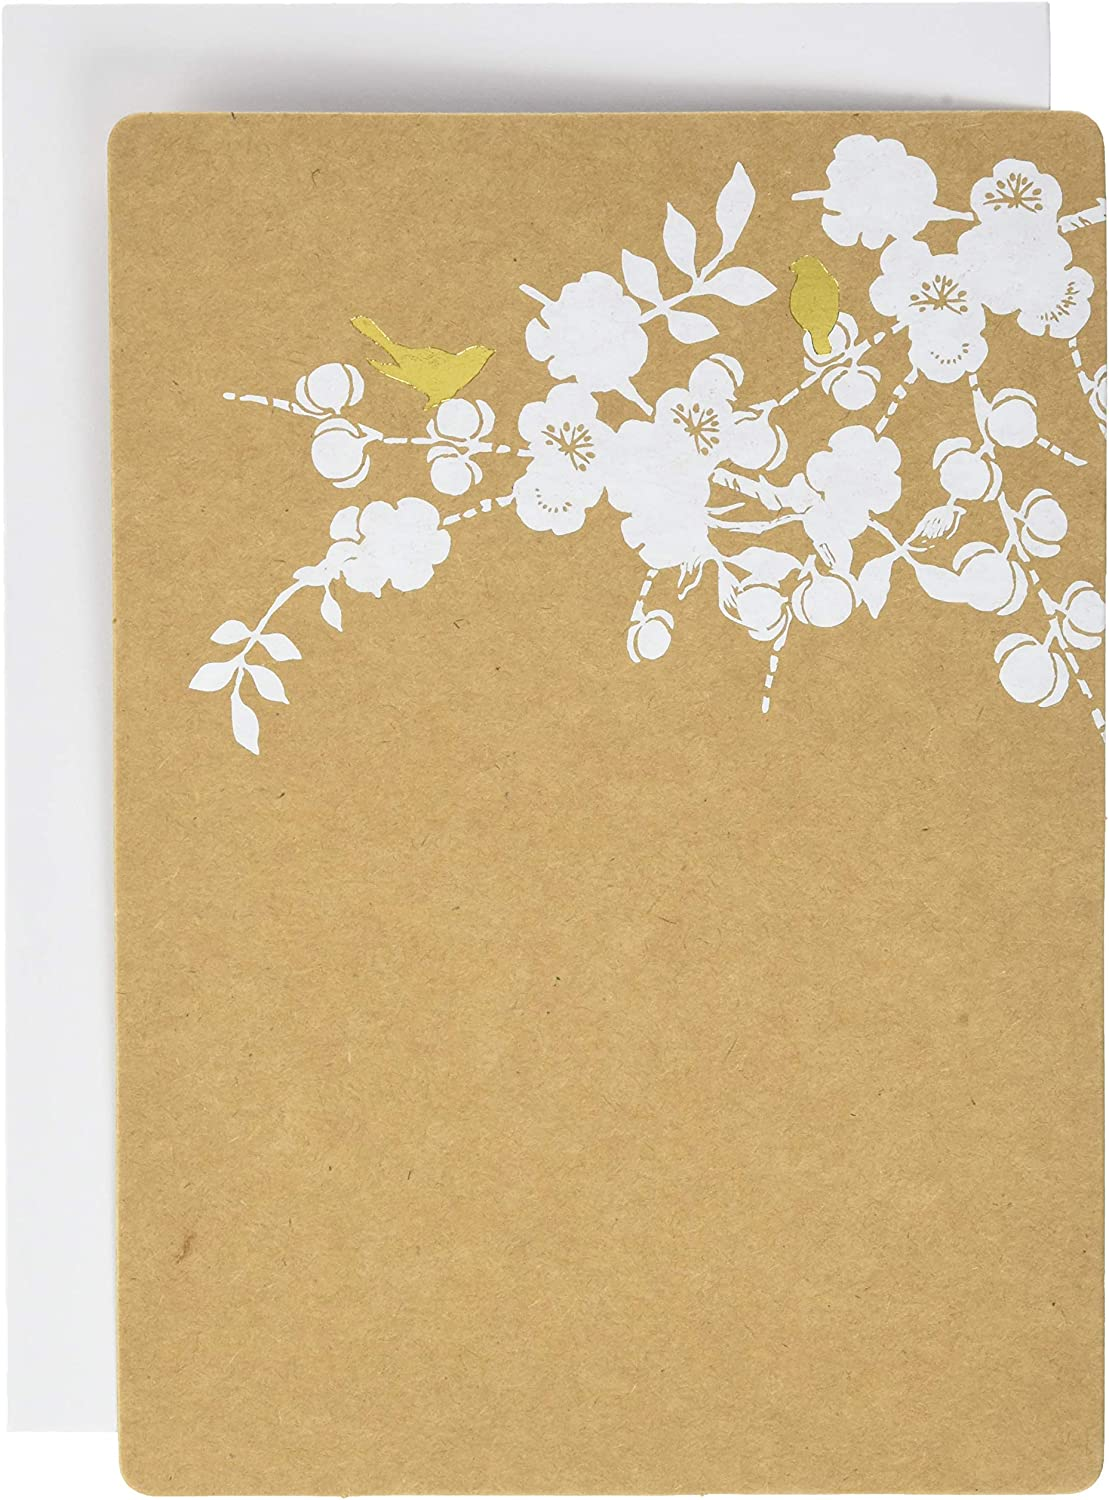 "Gartner Studios Gold Foil Birds Kraft Print At Home Wedding Invitation Kit, 5"" x 7"" and 3.5"" x 5"", Set of 50, Includes Response Cards"